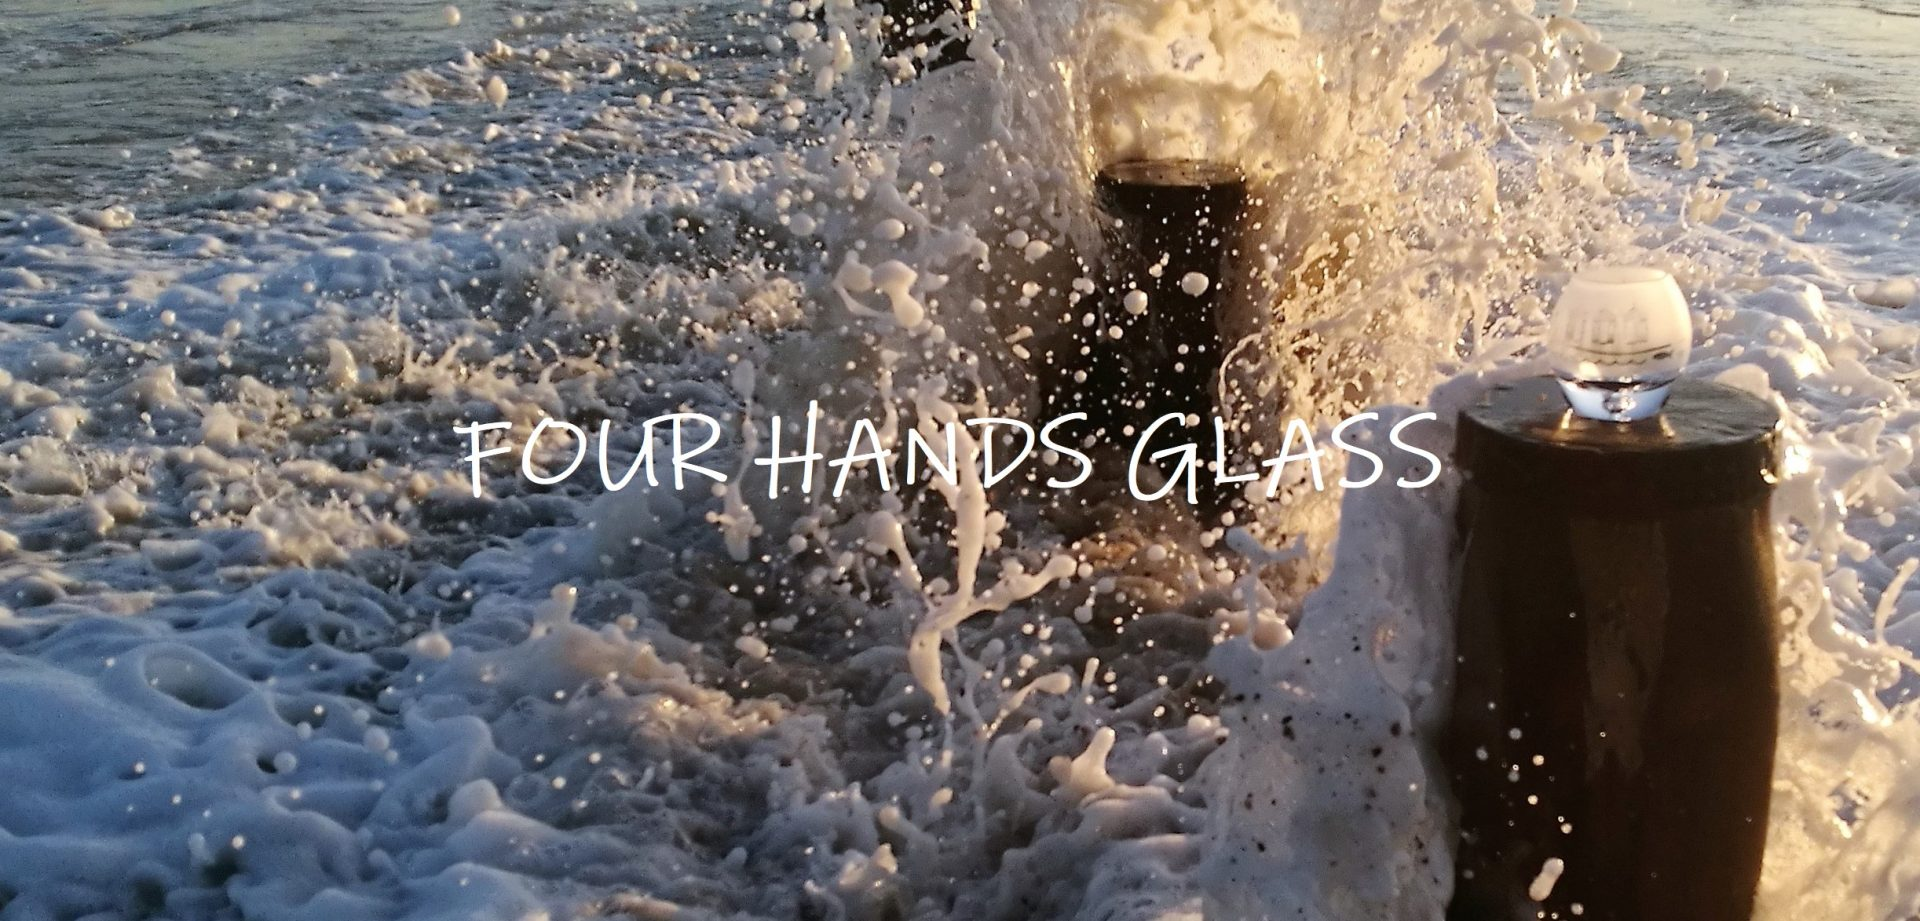 Four Hands Etched Glass